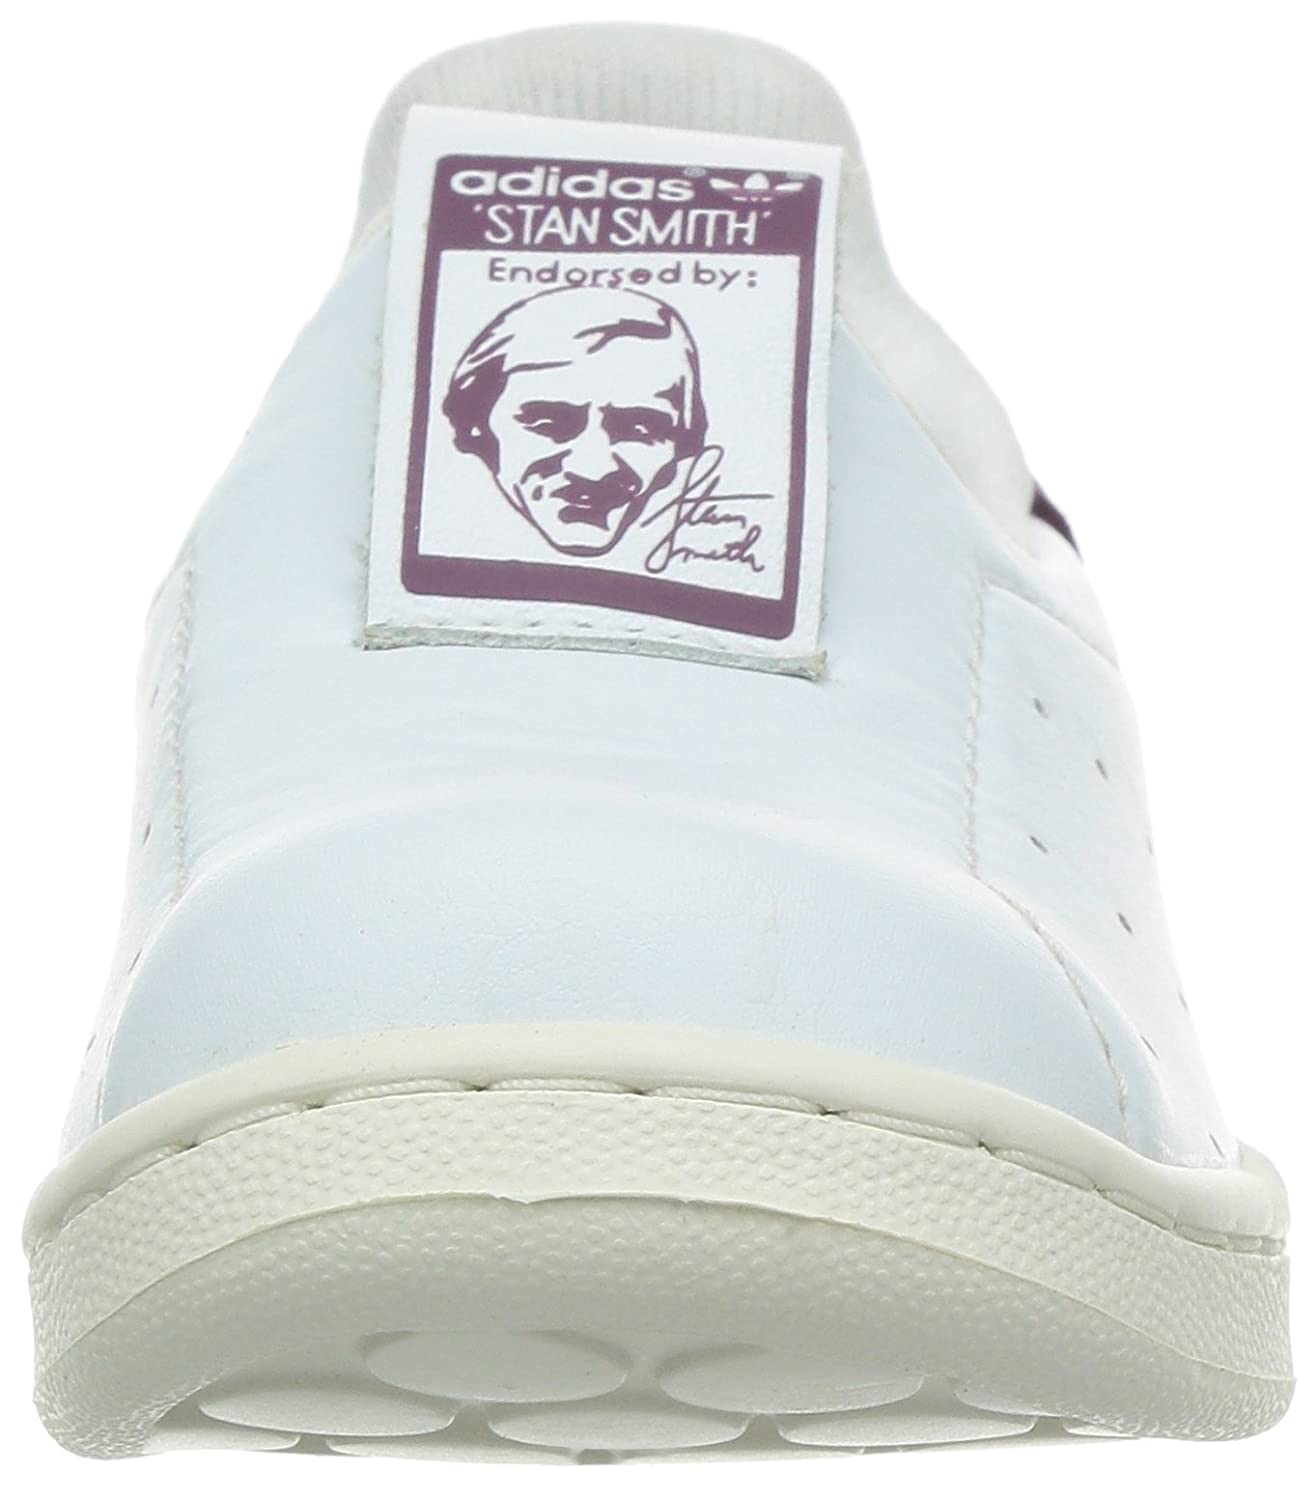 detailed look b7230 8fb07 Infant Boys adidas Originals Stan Smith 360 Trainers In White   Green, white  green, 4 UK Child  Amazon.co.uk  Shoes   Bags